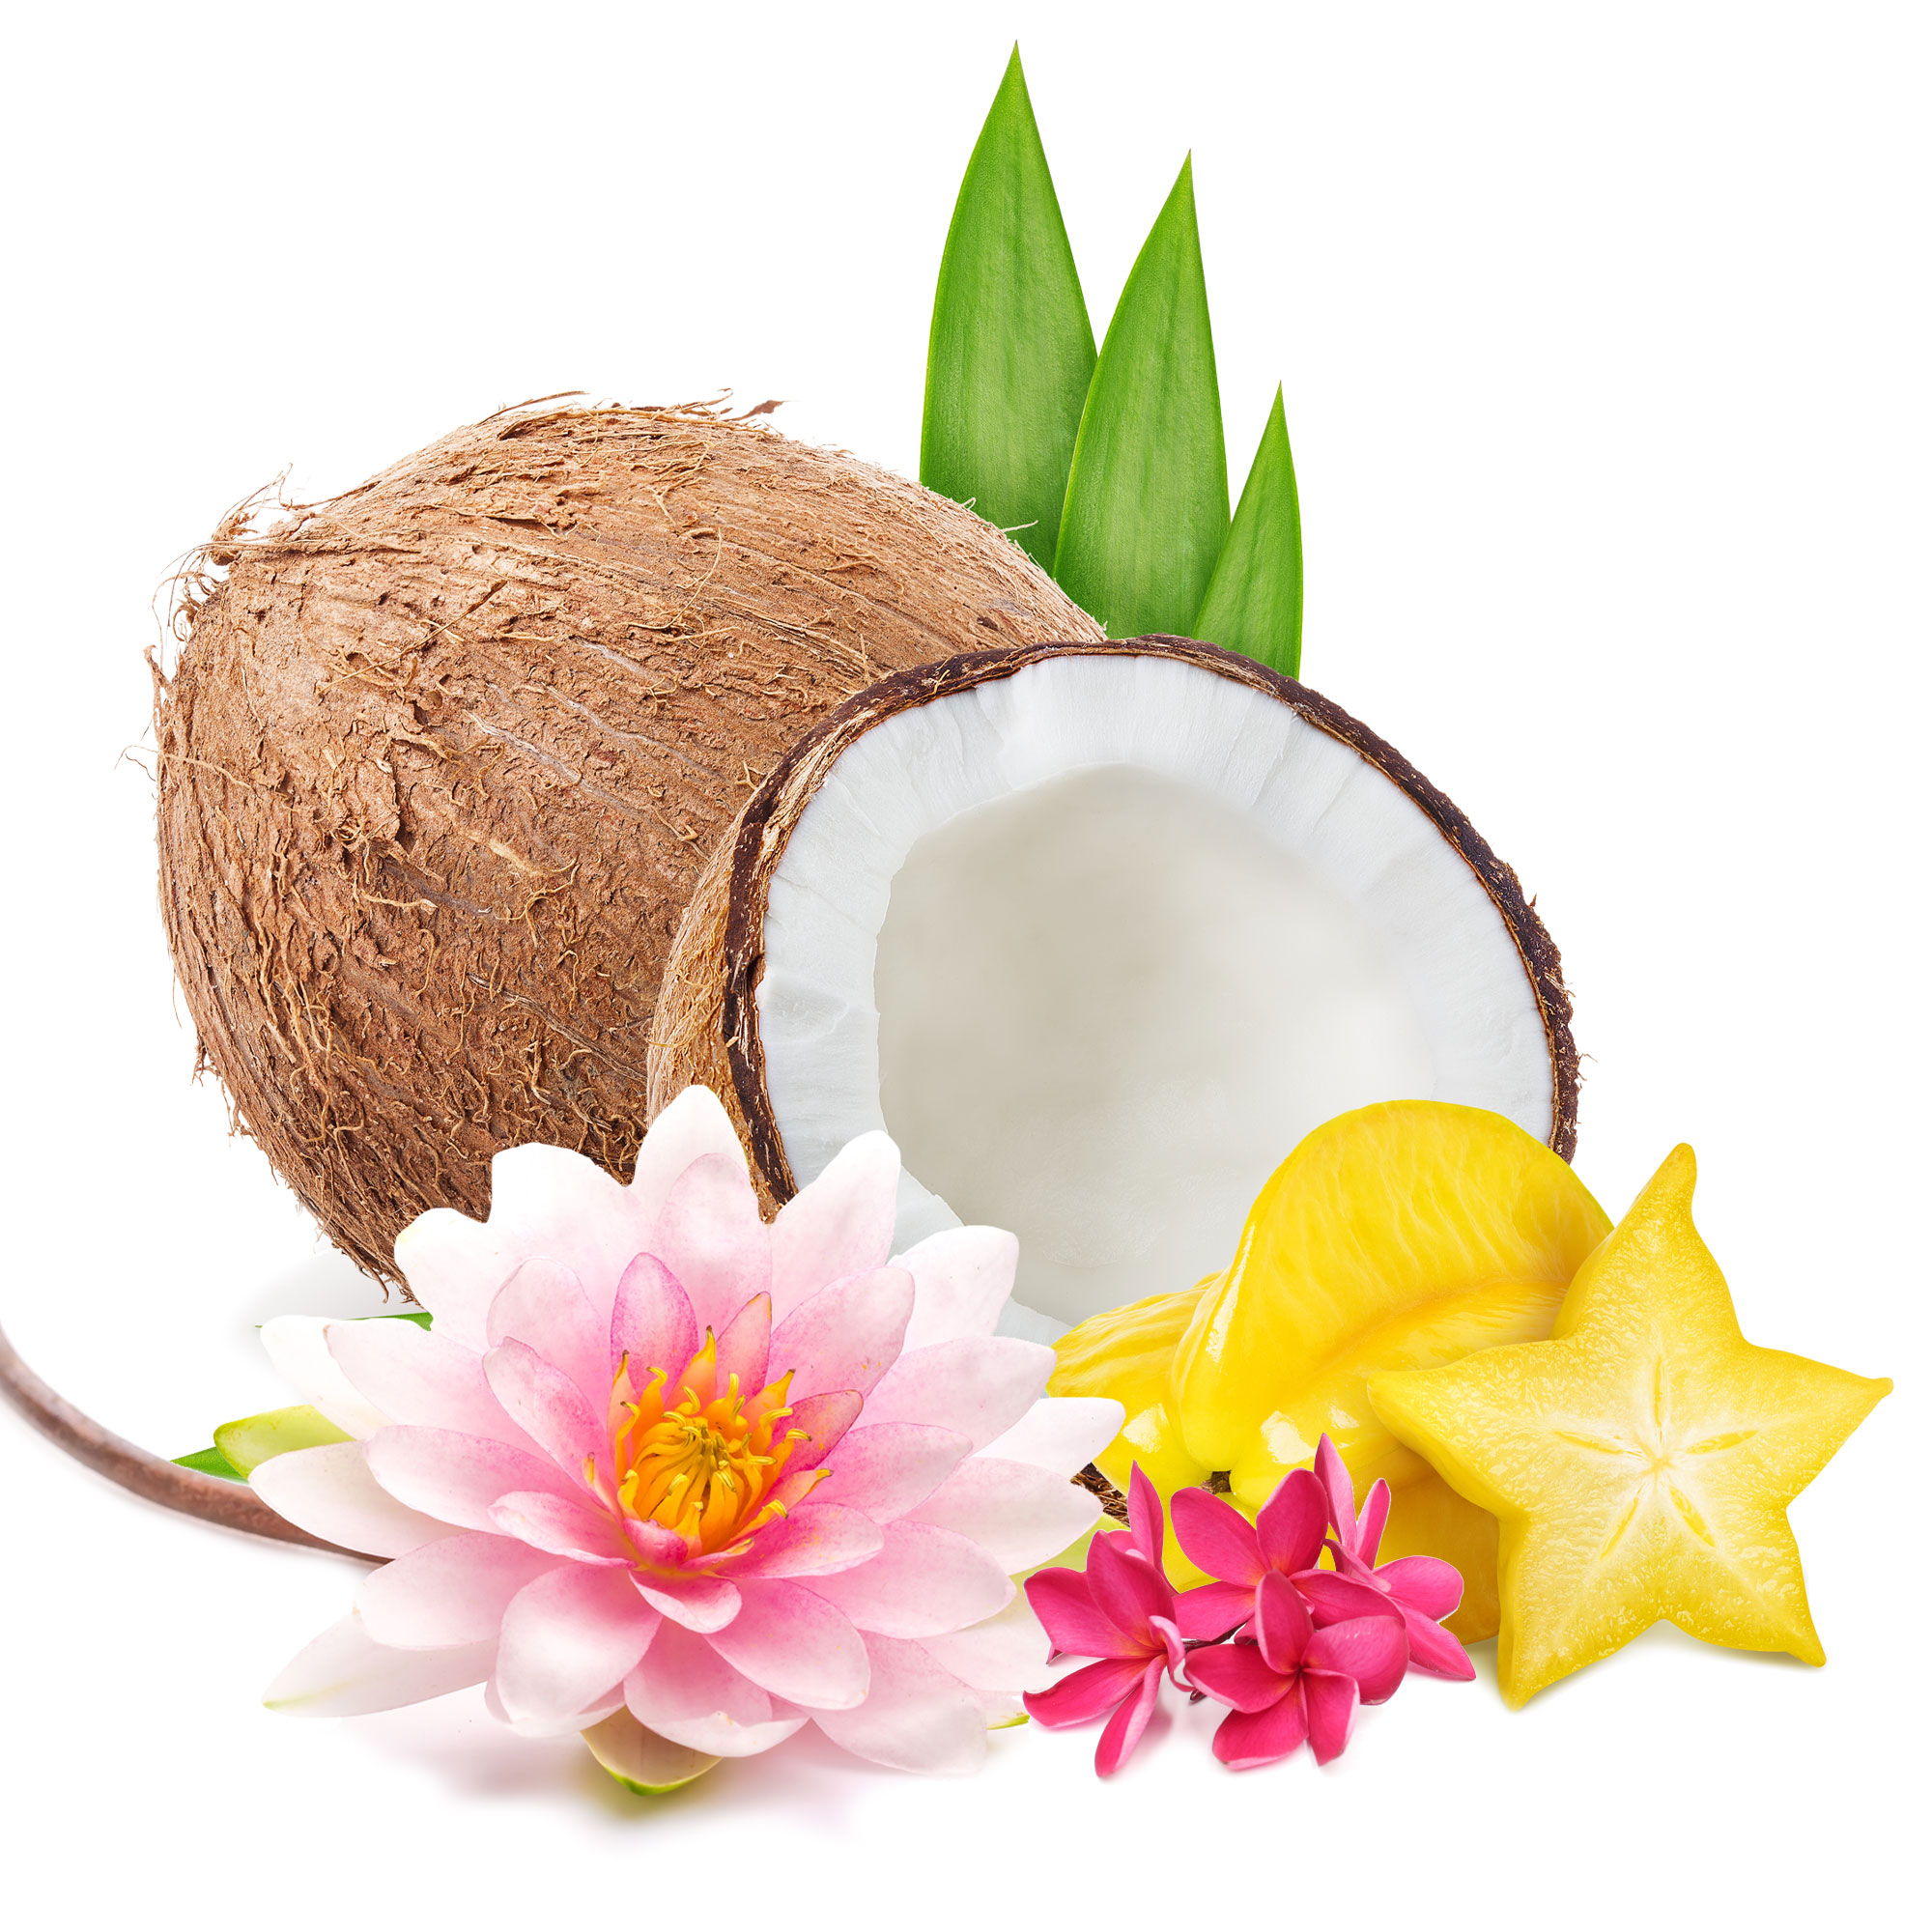 Pure Paradise Scent Ingredients